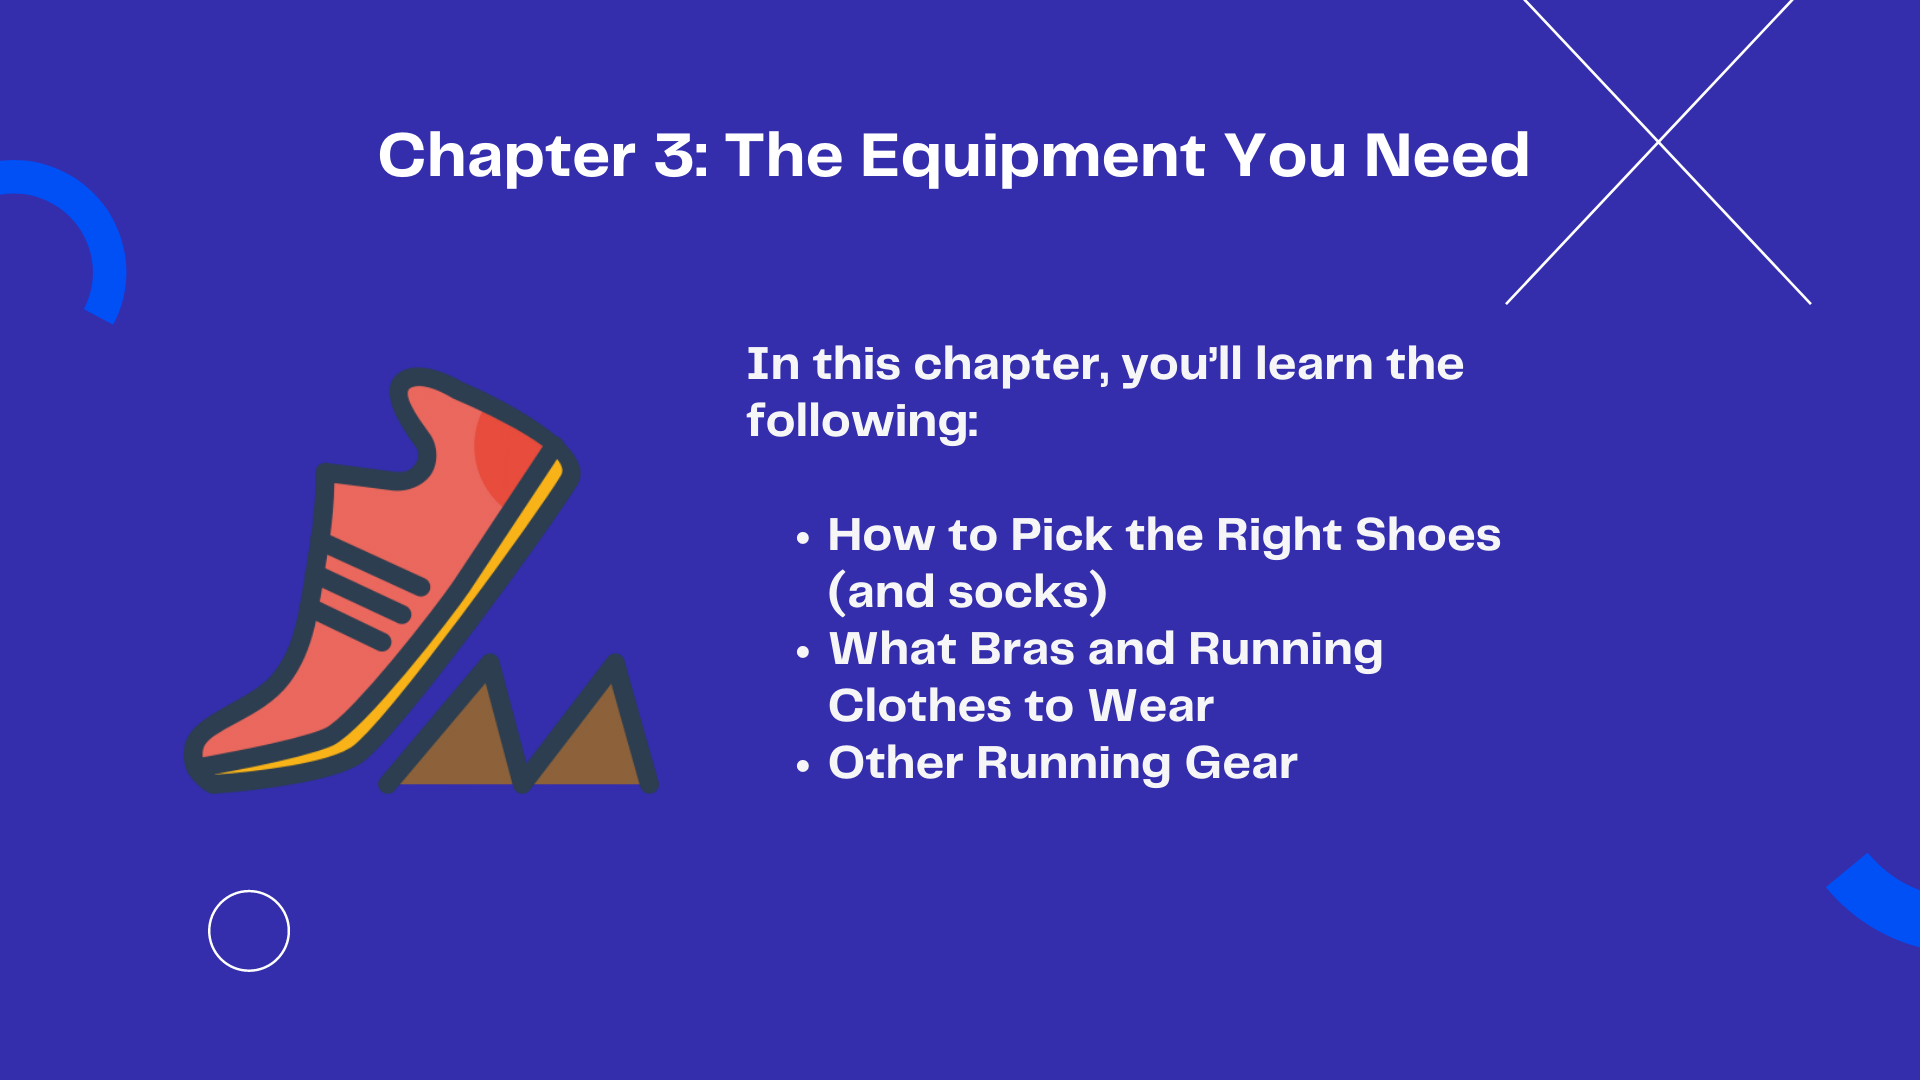 The Equipment You Need